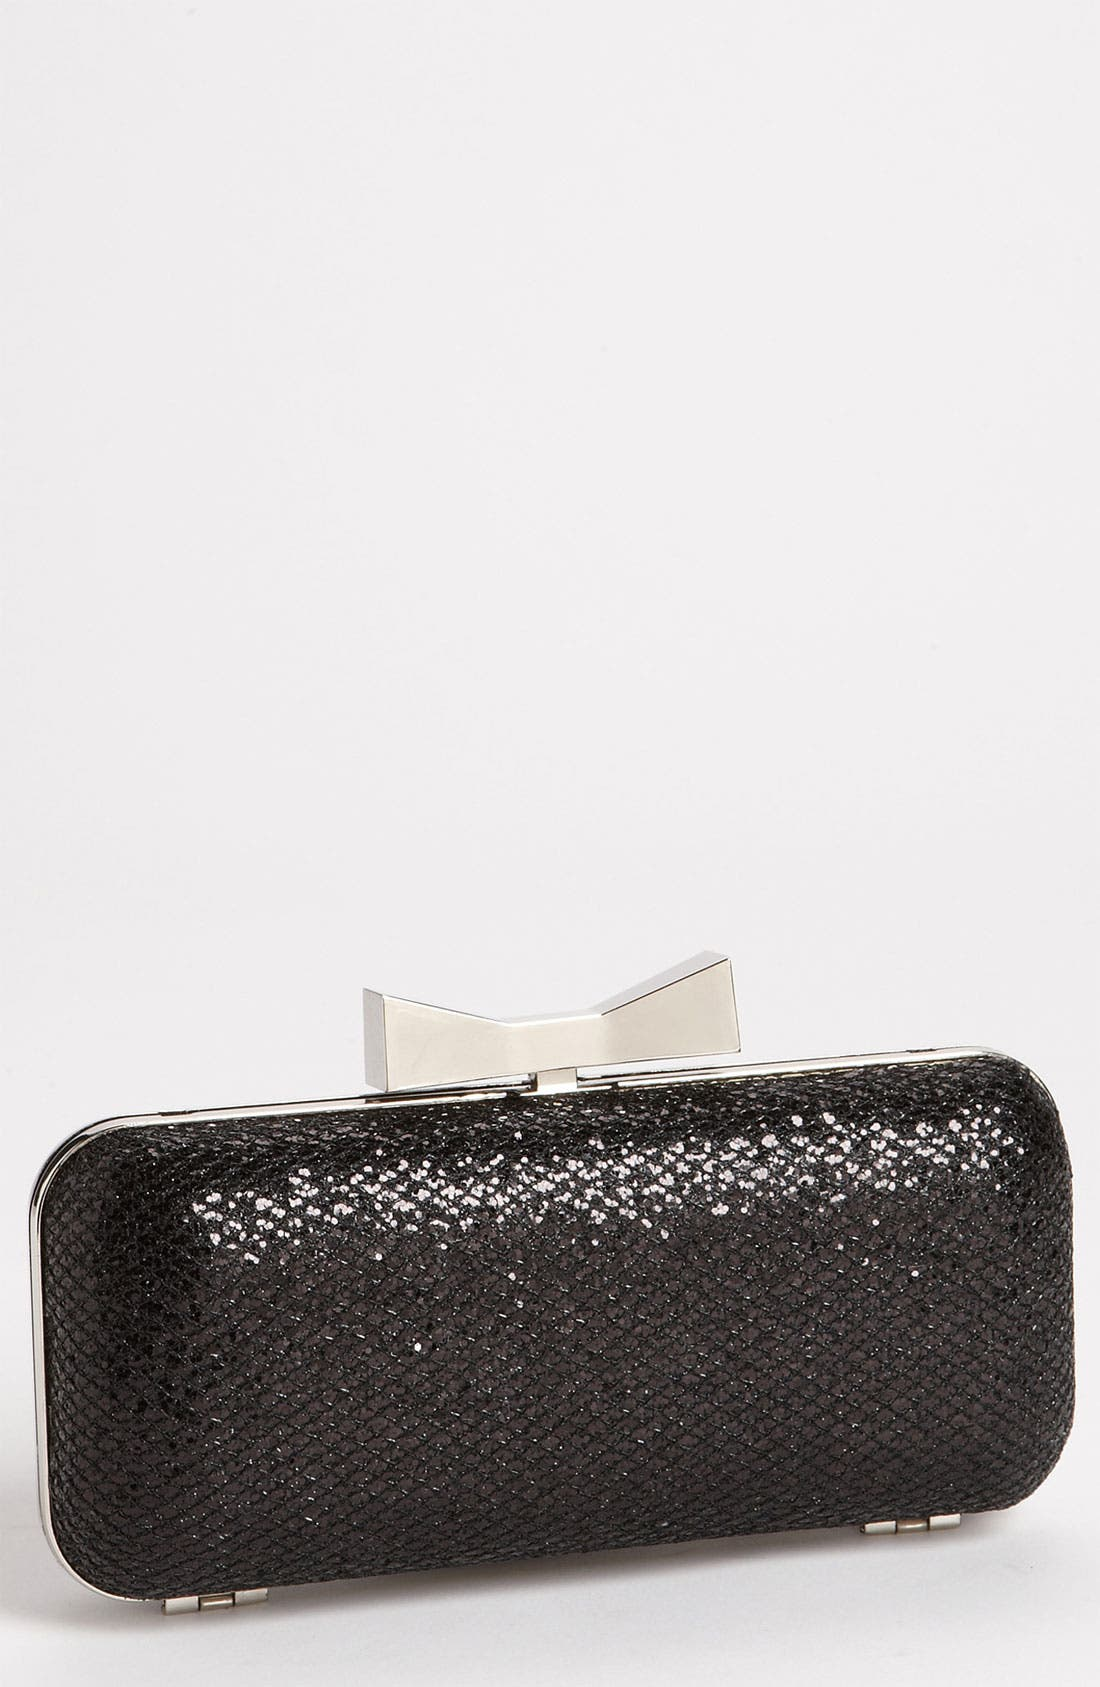 Natasha Couture 'Glitter' Clutch,                             Main thumbnail 1, color,                             001